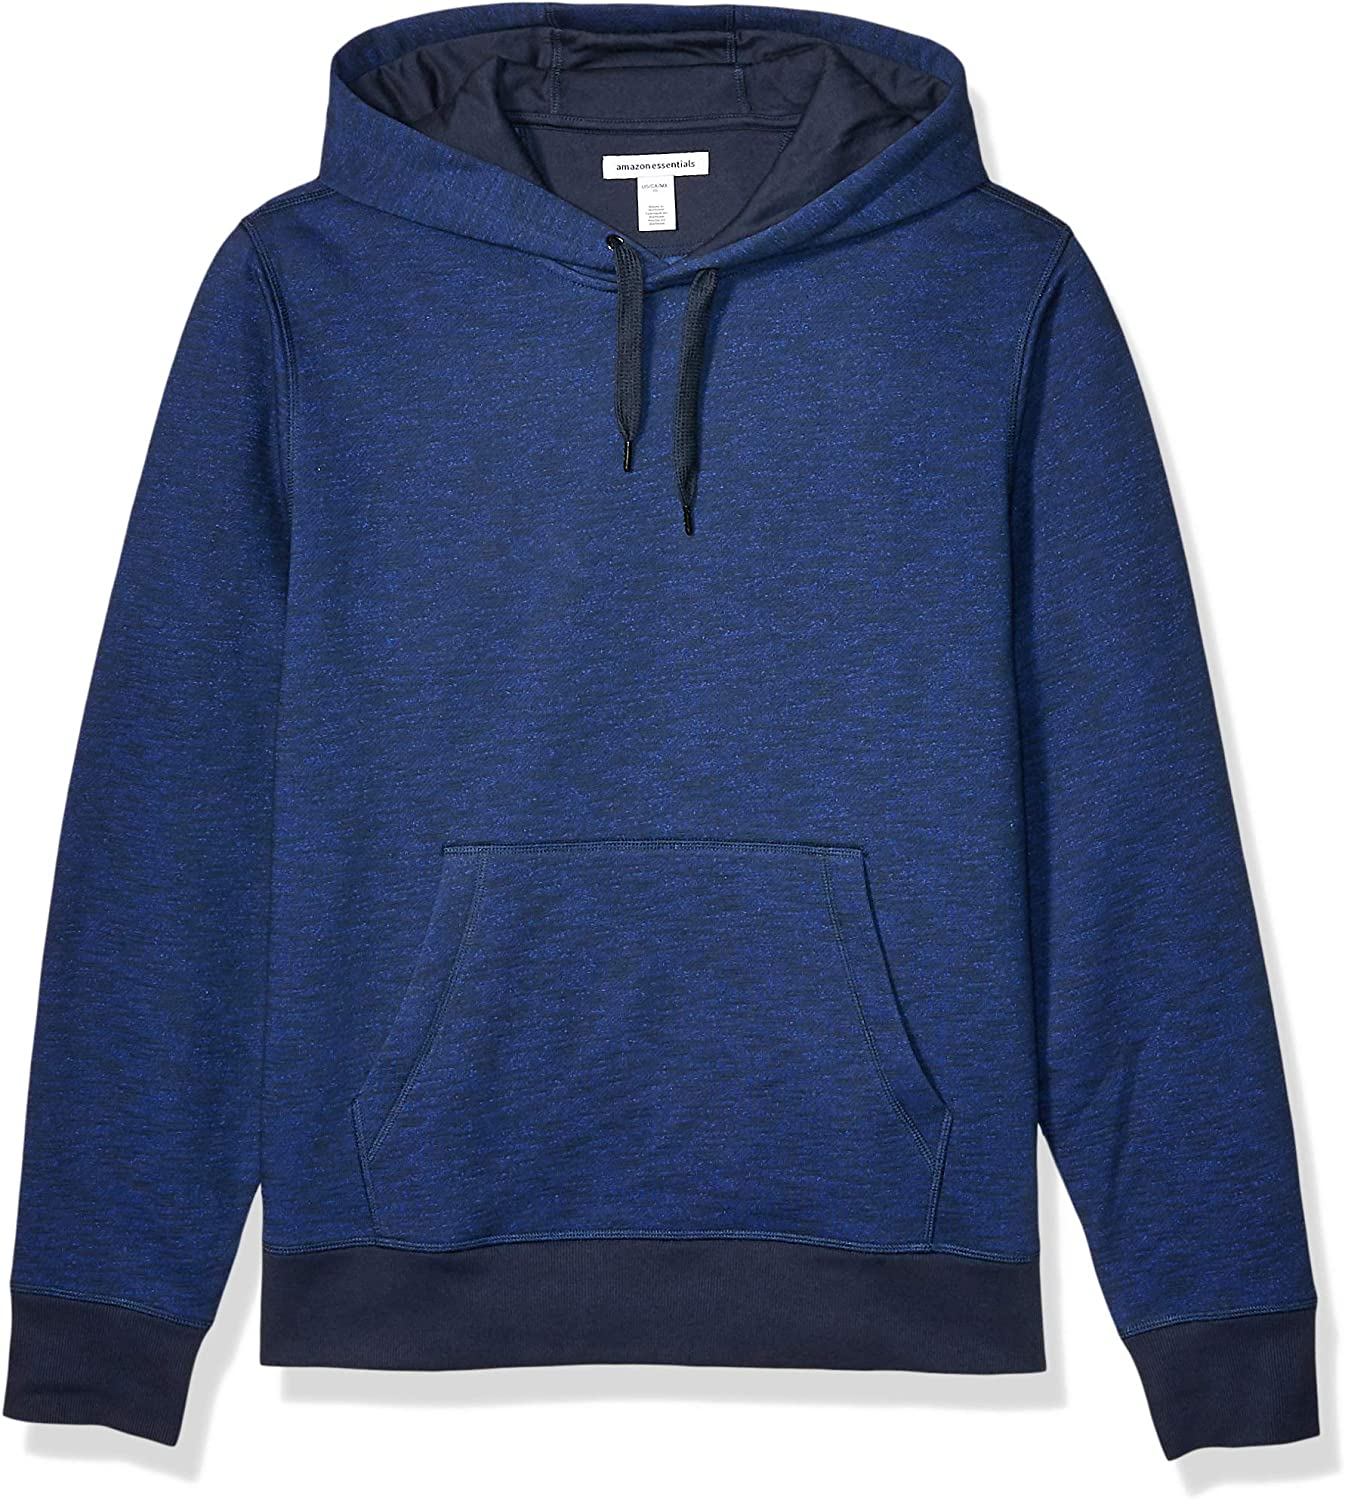 Essentials Mens Hooded Long-Sleeve Fleece Sweatshirt Sweatshirt